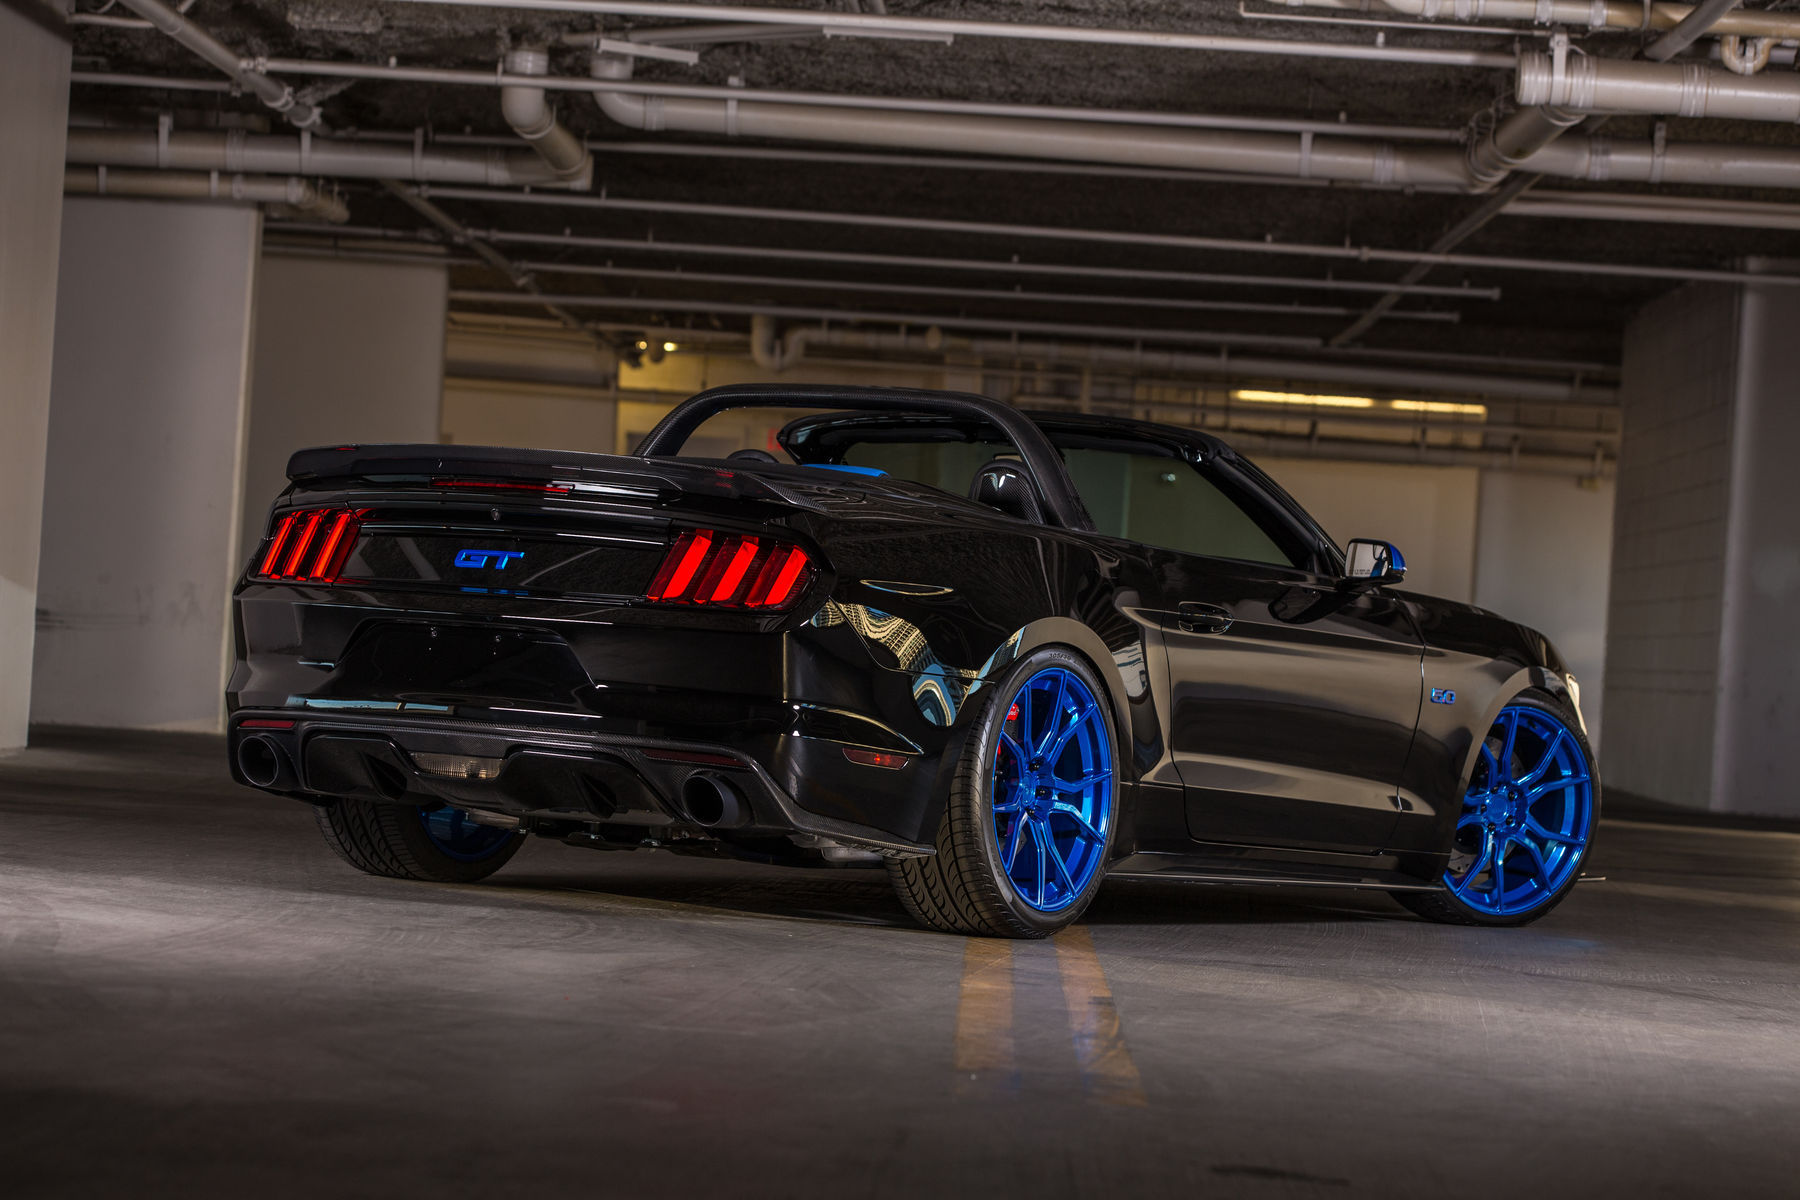 2015 Ford Mustang   2015 MAD Industries Ford Mustang